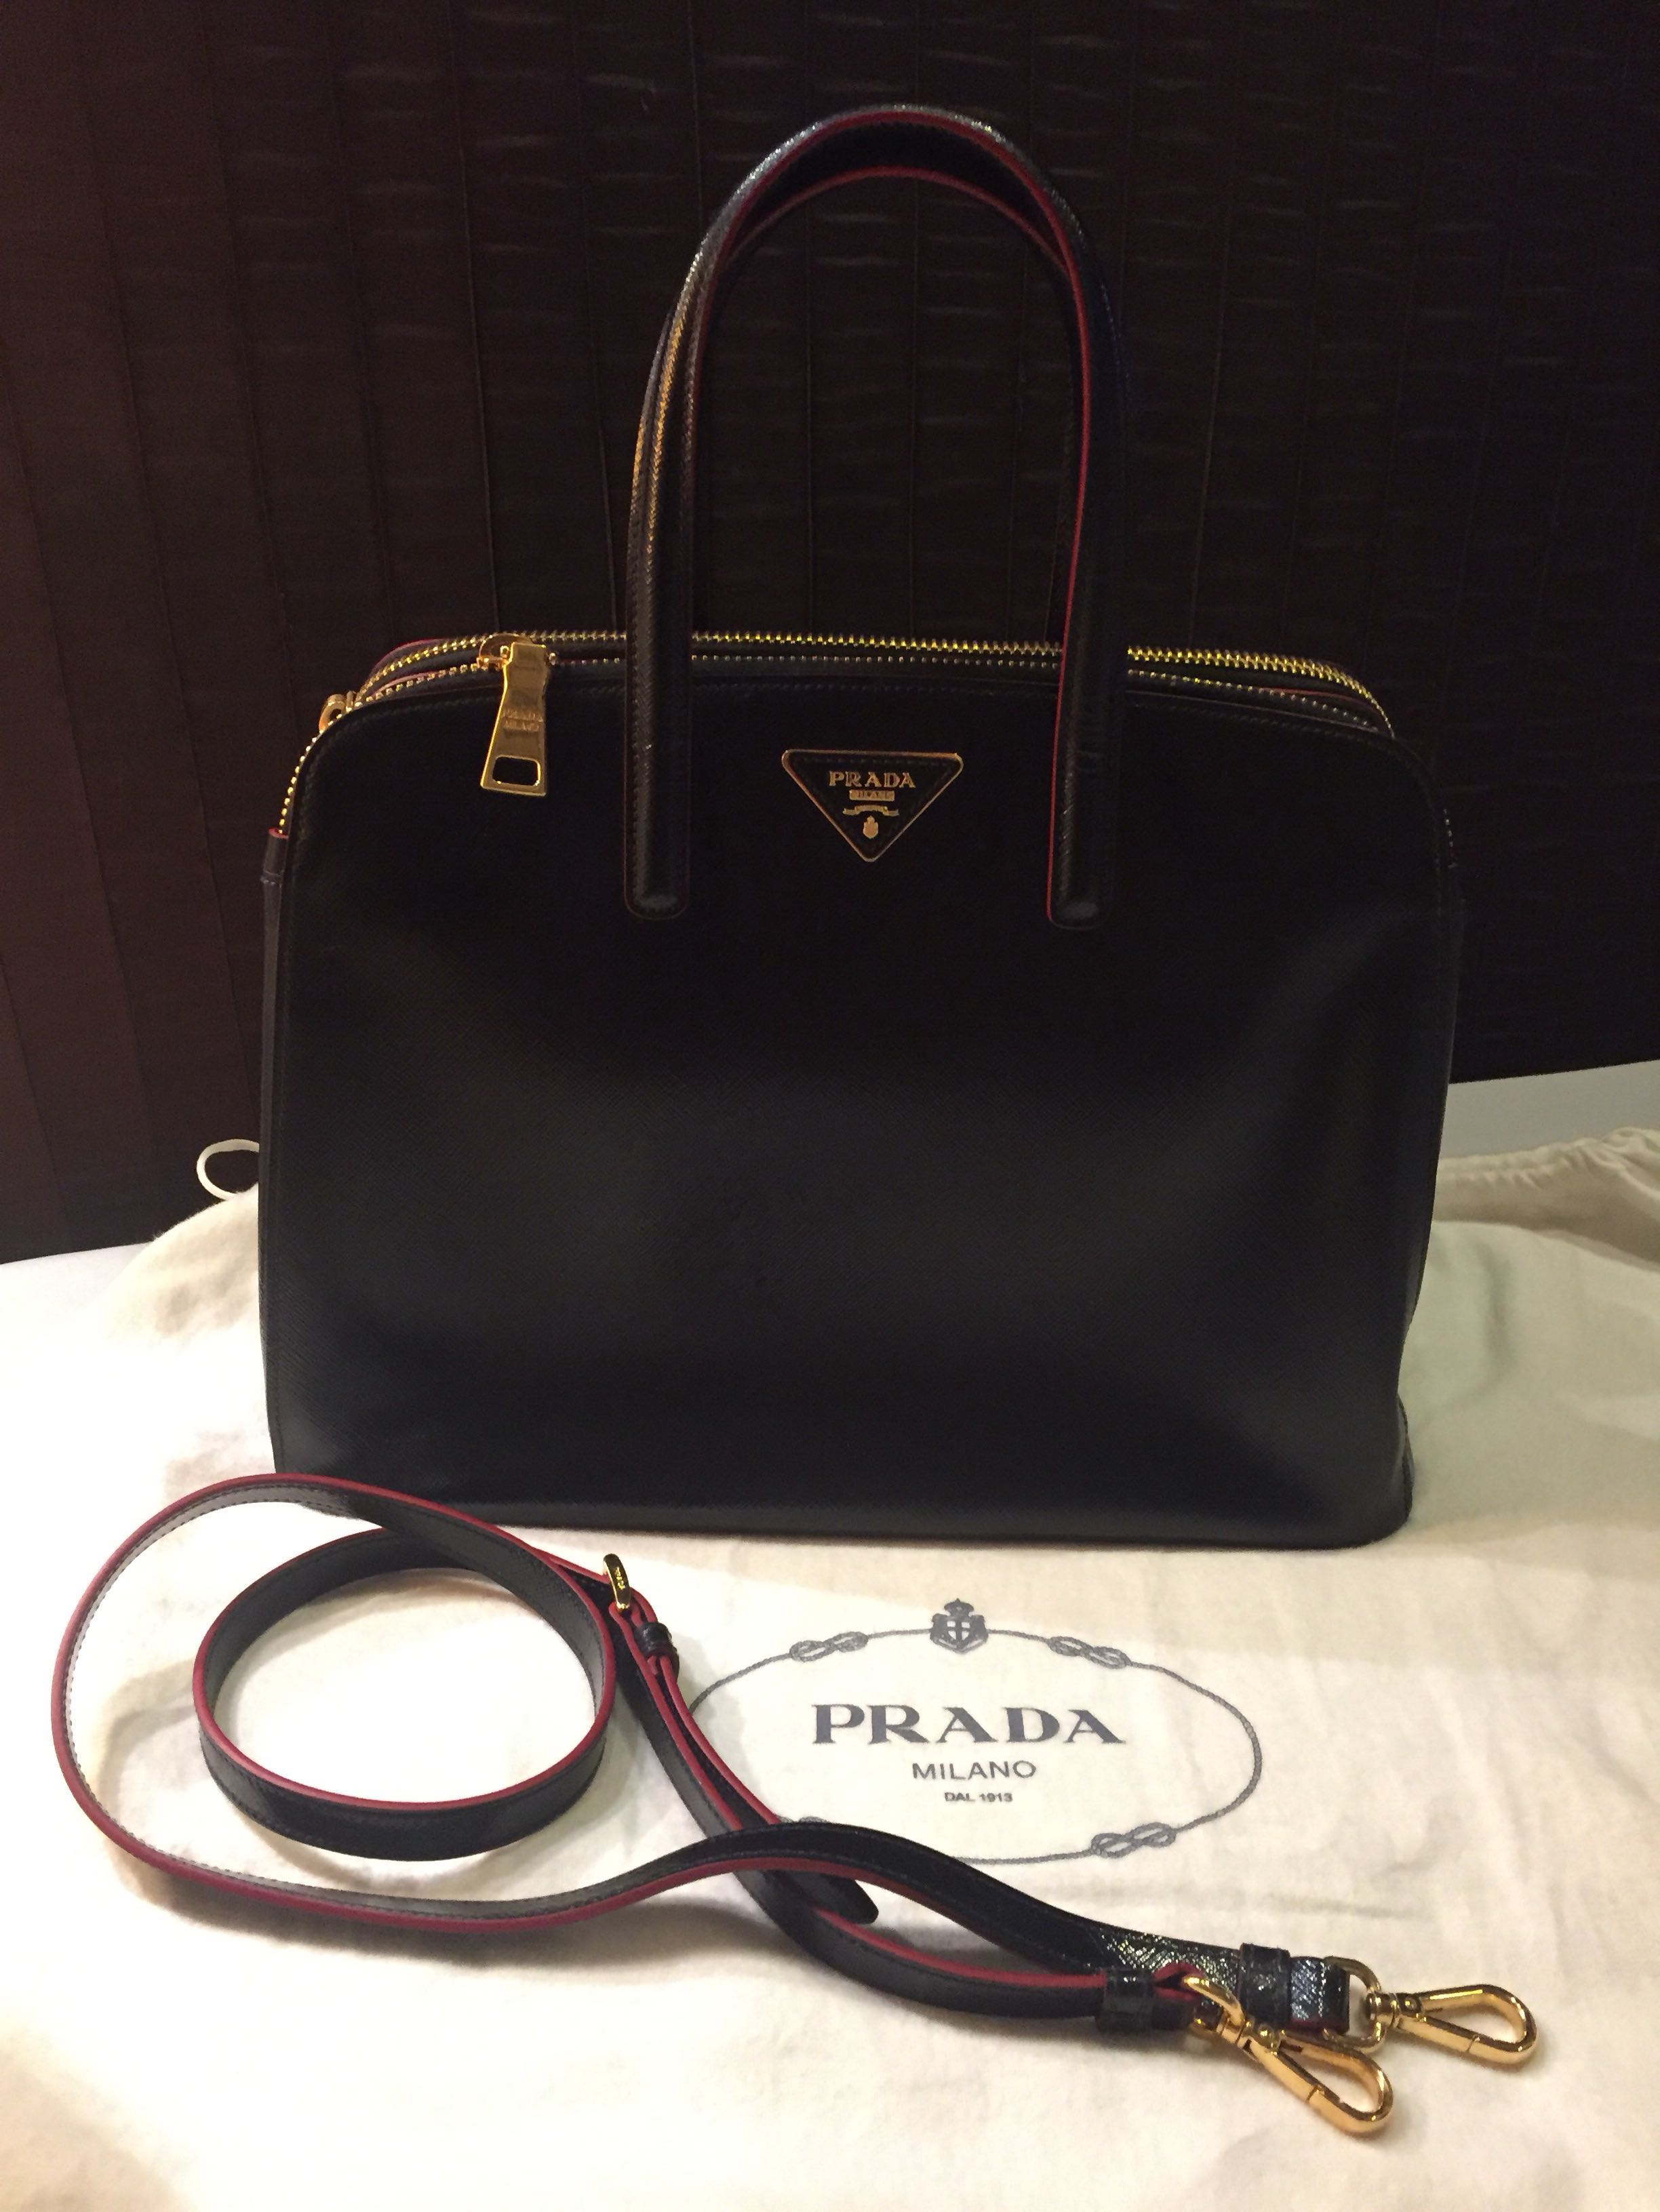 889b4 73000  sweden prada double zip tote bag with detachable strap womens  fashion e90bb e826d a97354d9bb0ca